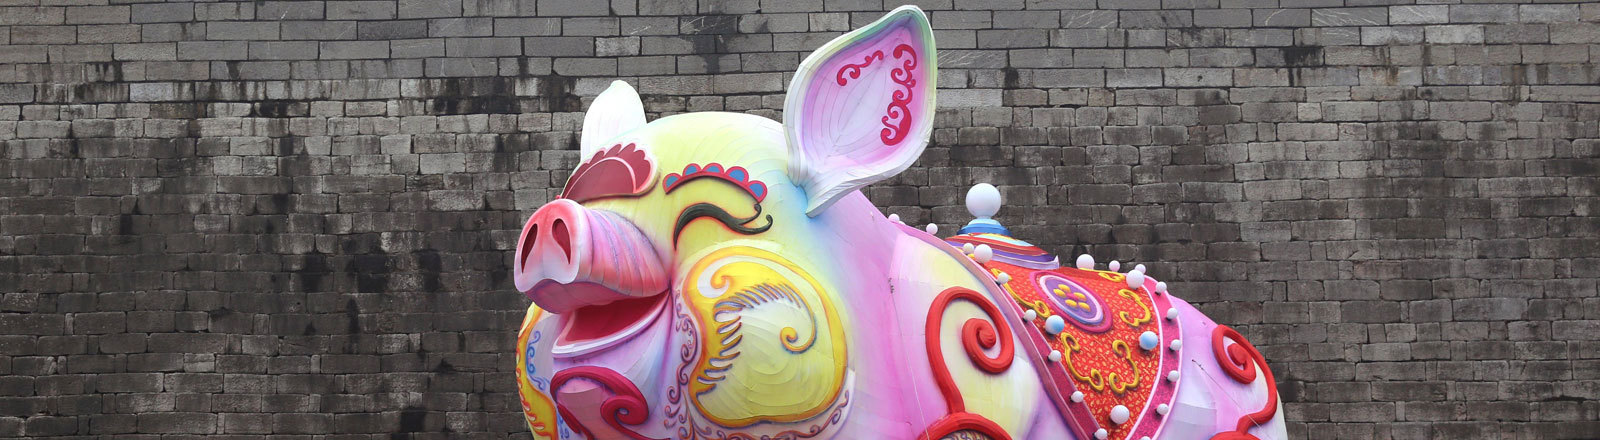 People look at a lantern featuring a pig, which is nearly 10 meters high and 15 meters long, at Nanjing Fuzimiao scenic area for the upcoming Chinese New Year, the Year of the Pig